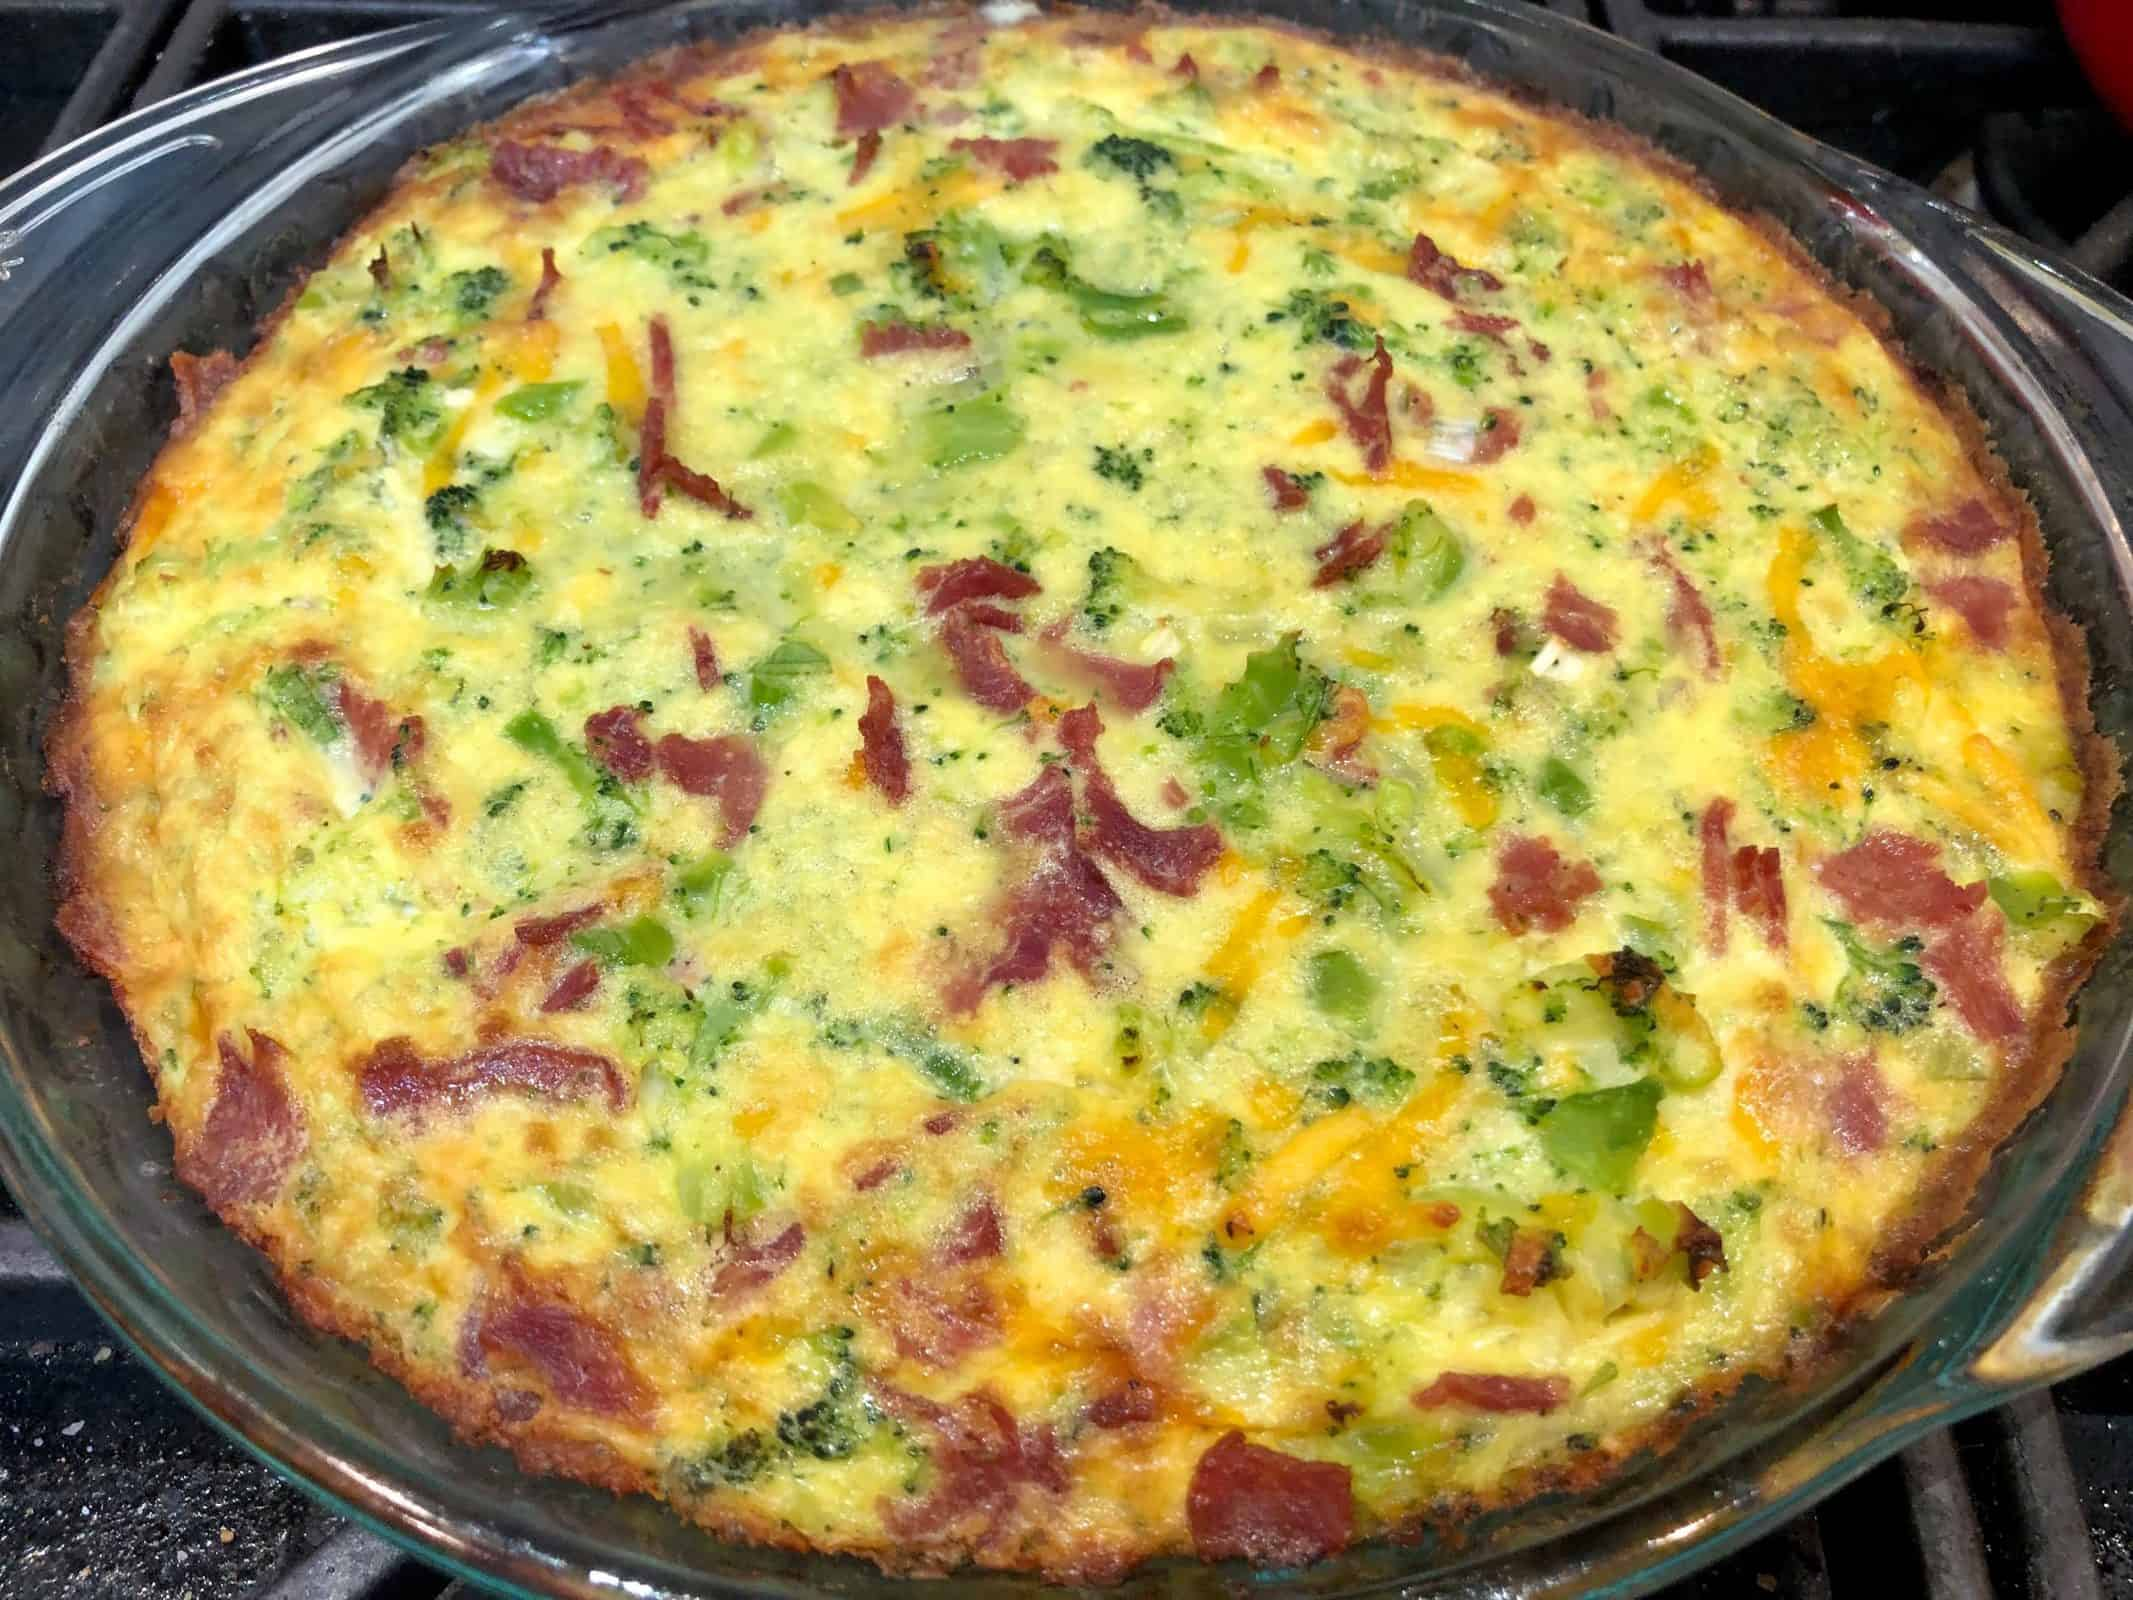 Crustless Broccoli and Turkey Bacon Quiche